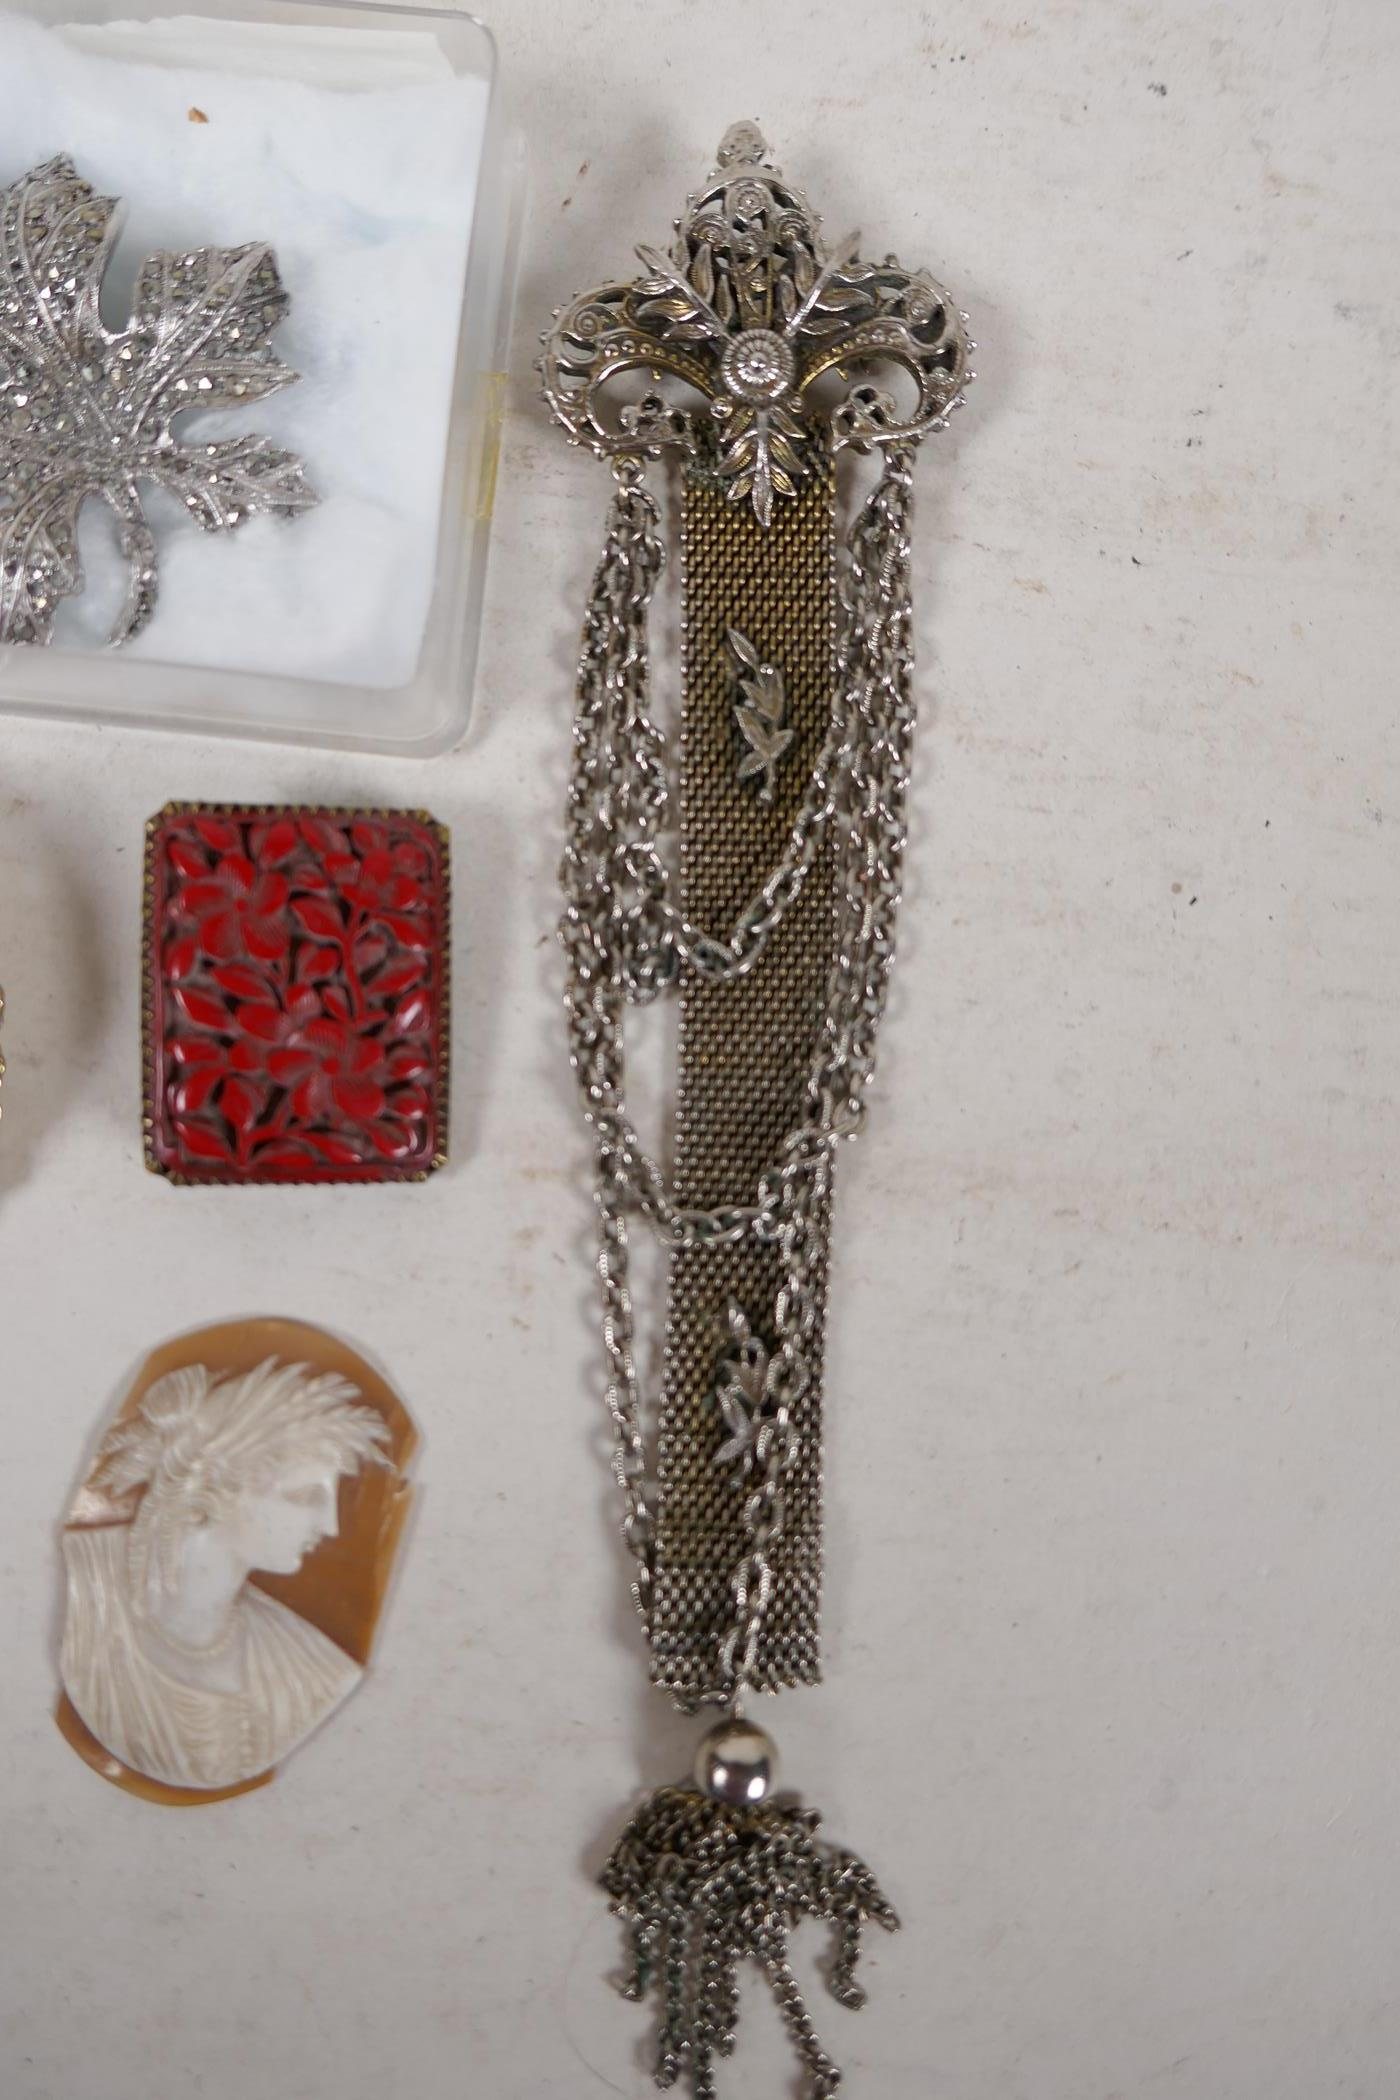 A pair of silver gilt and jade bead stud earrings, an unmarked white metal chain pendant brooch, a - Image 2 of 5